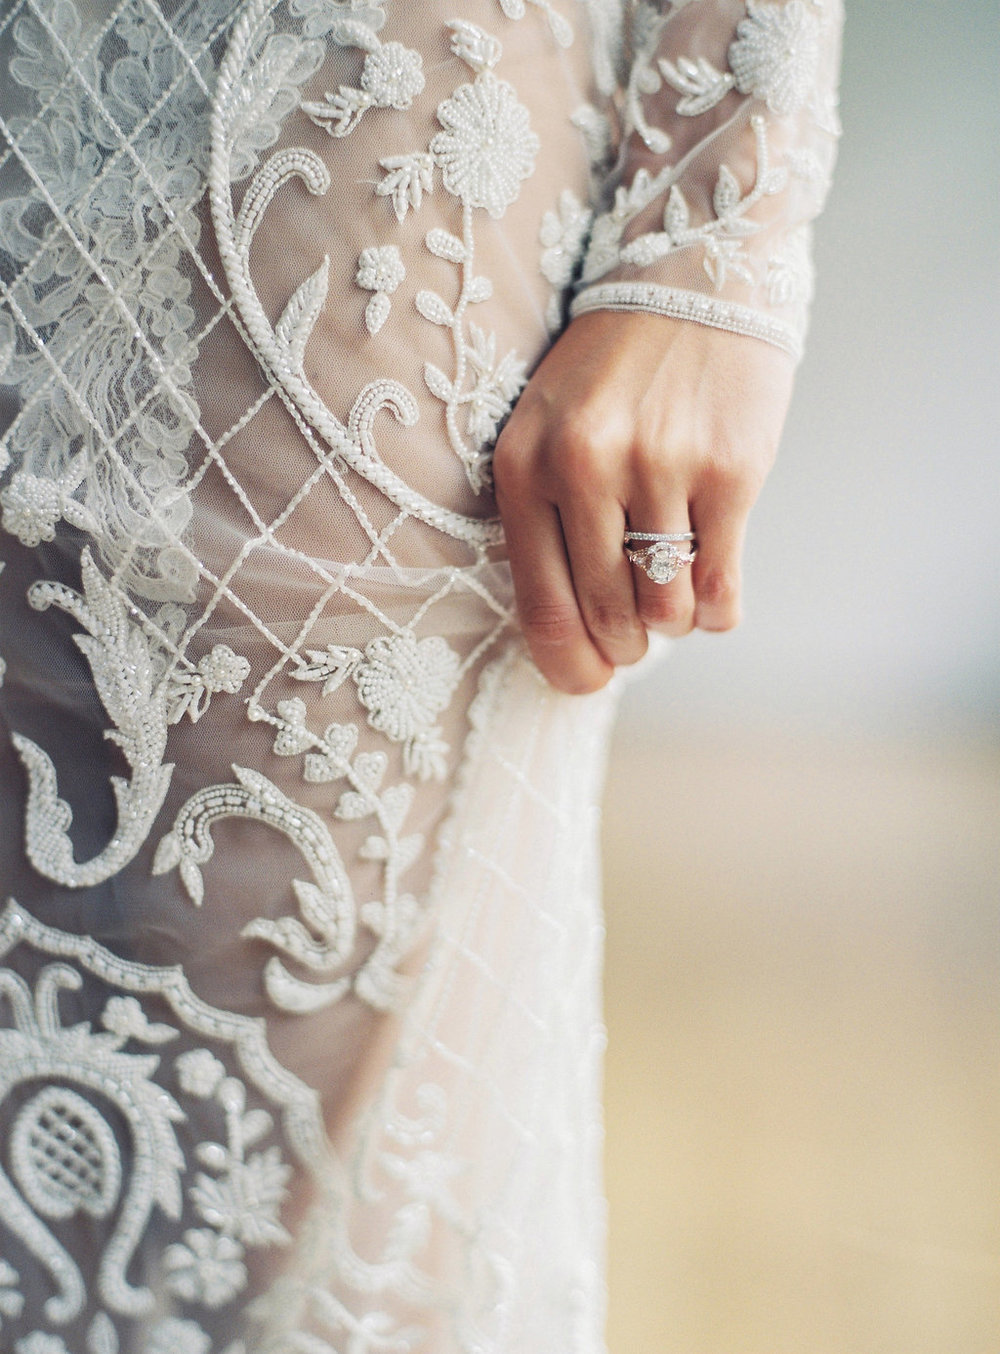 Aravella Event Design | Modern Minimalist Bridal Inspiration | Photo by Katie Grant Photography | Wedding Ring